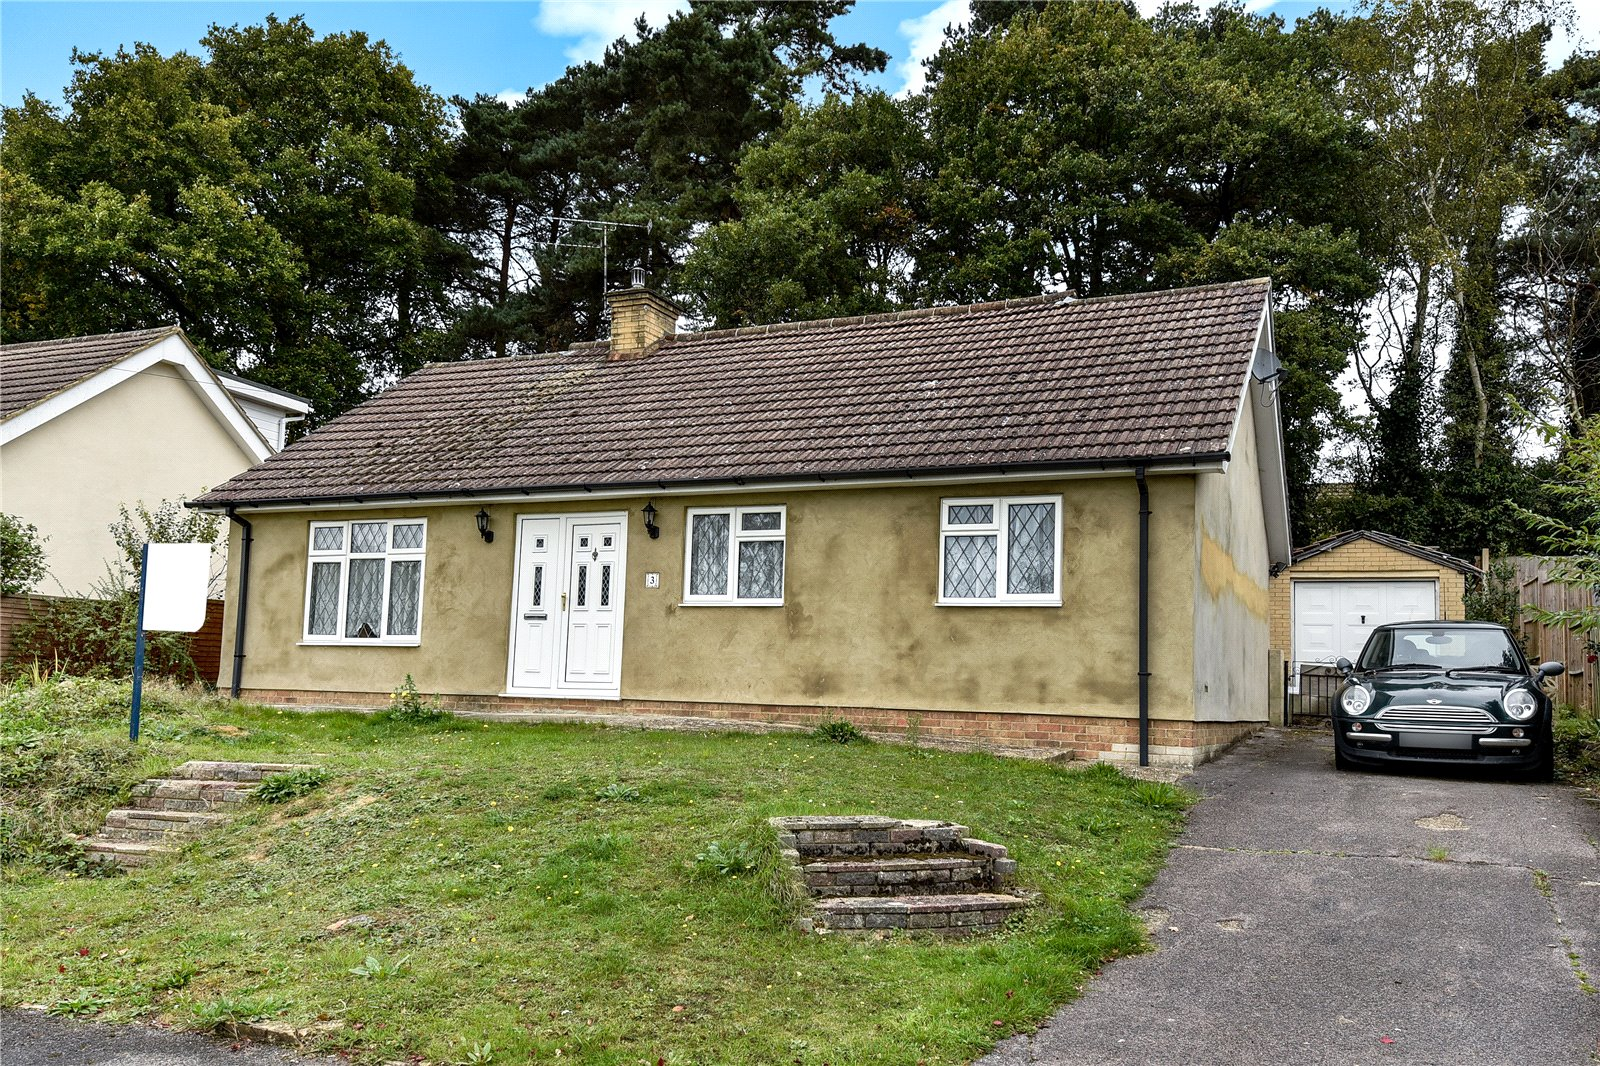 4 Bedrooms Detached Bungalow for sale in Glen Innes, College Town, Sandhurst, Berkshire, GU47